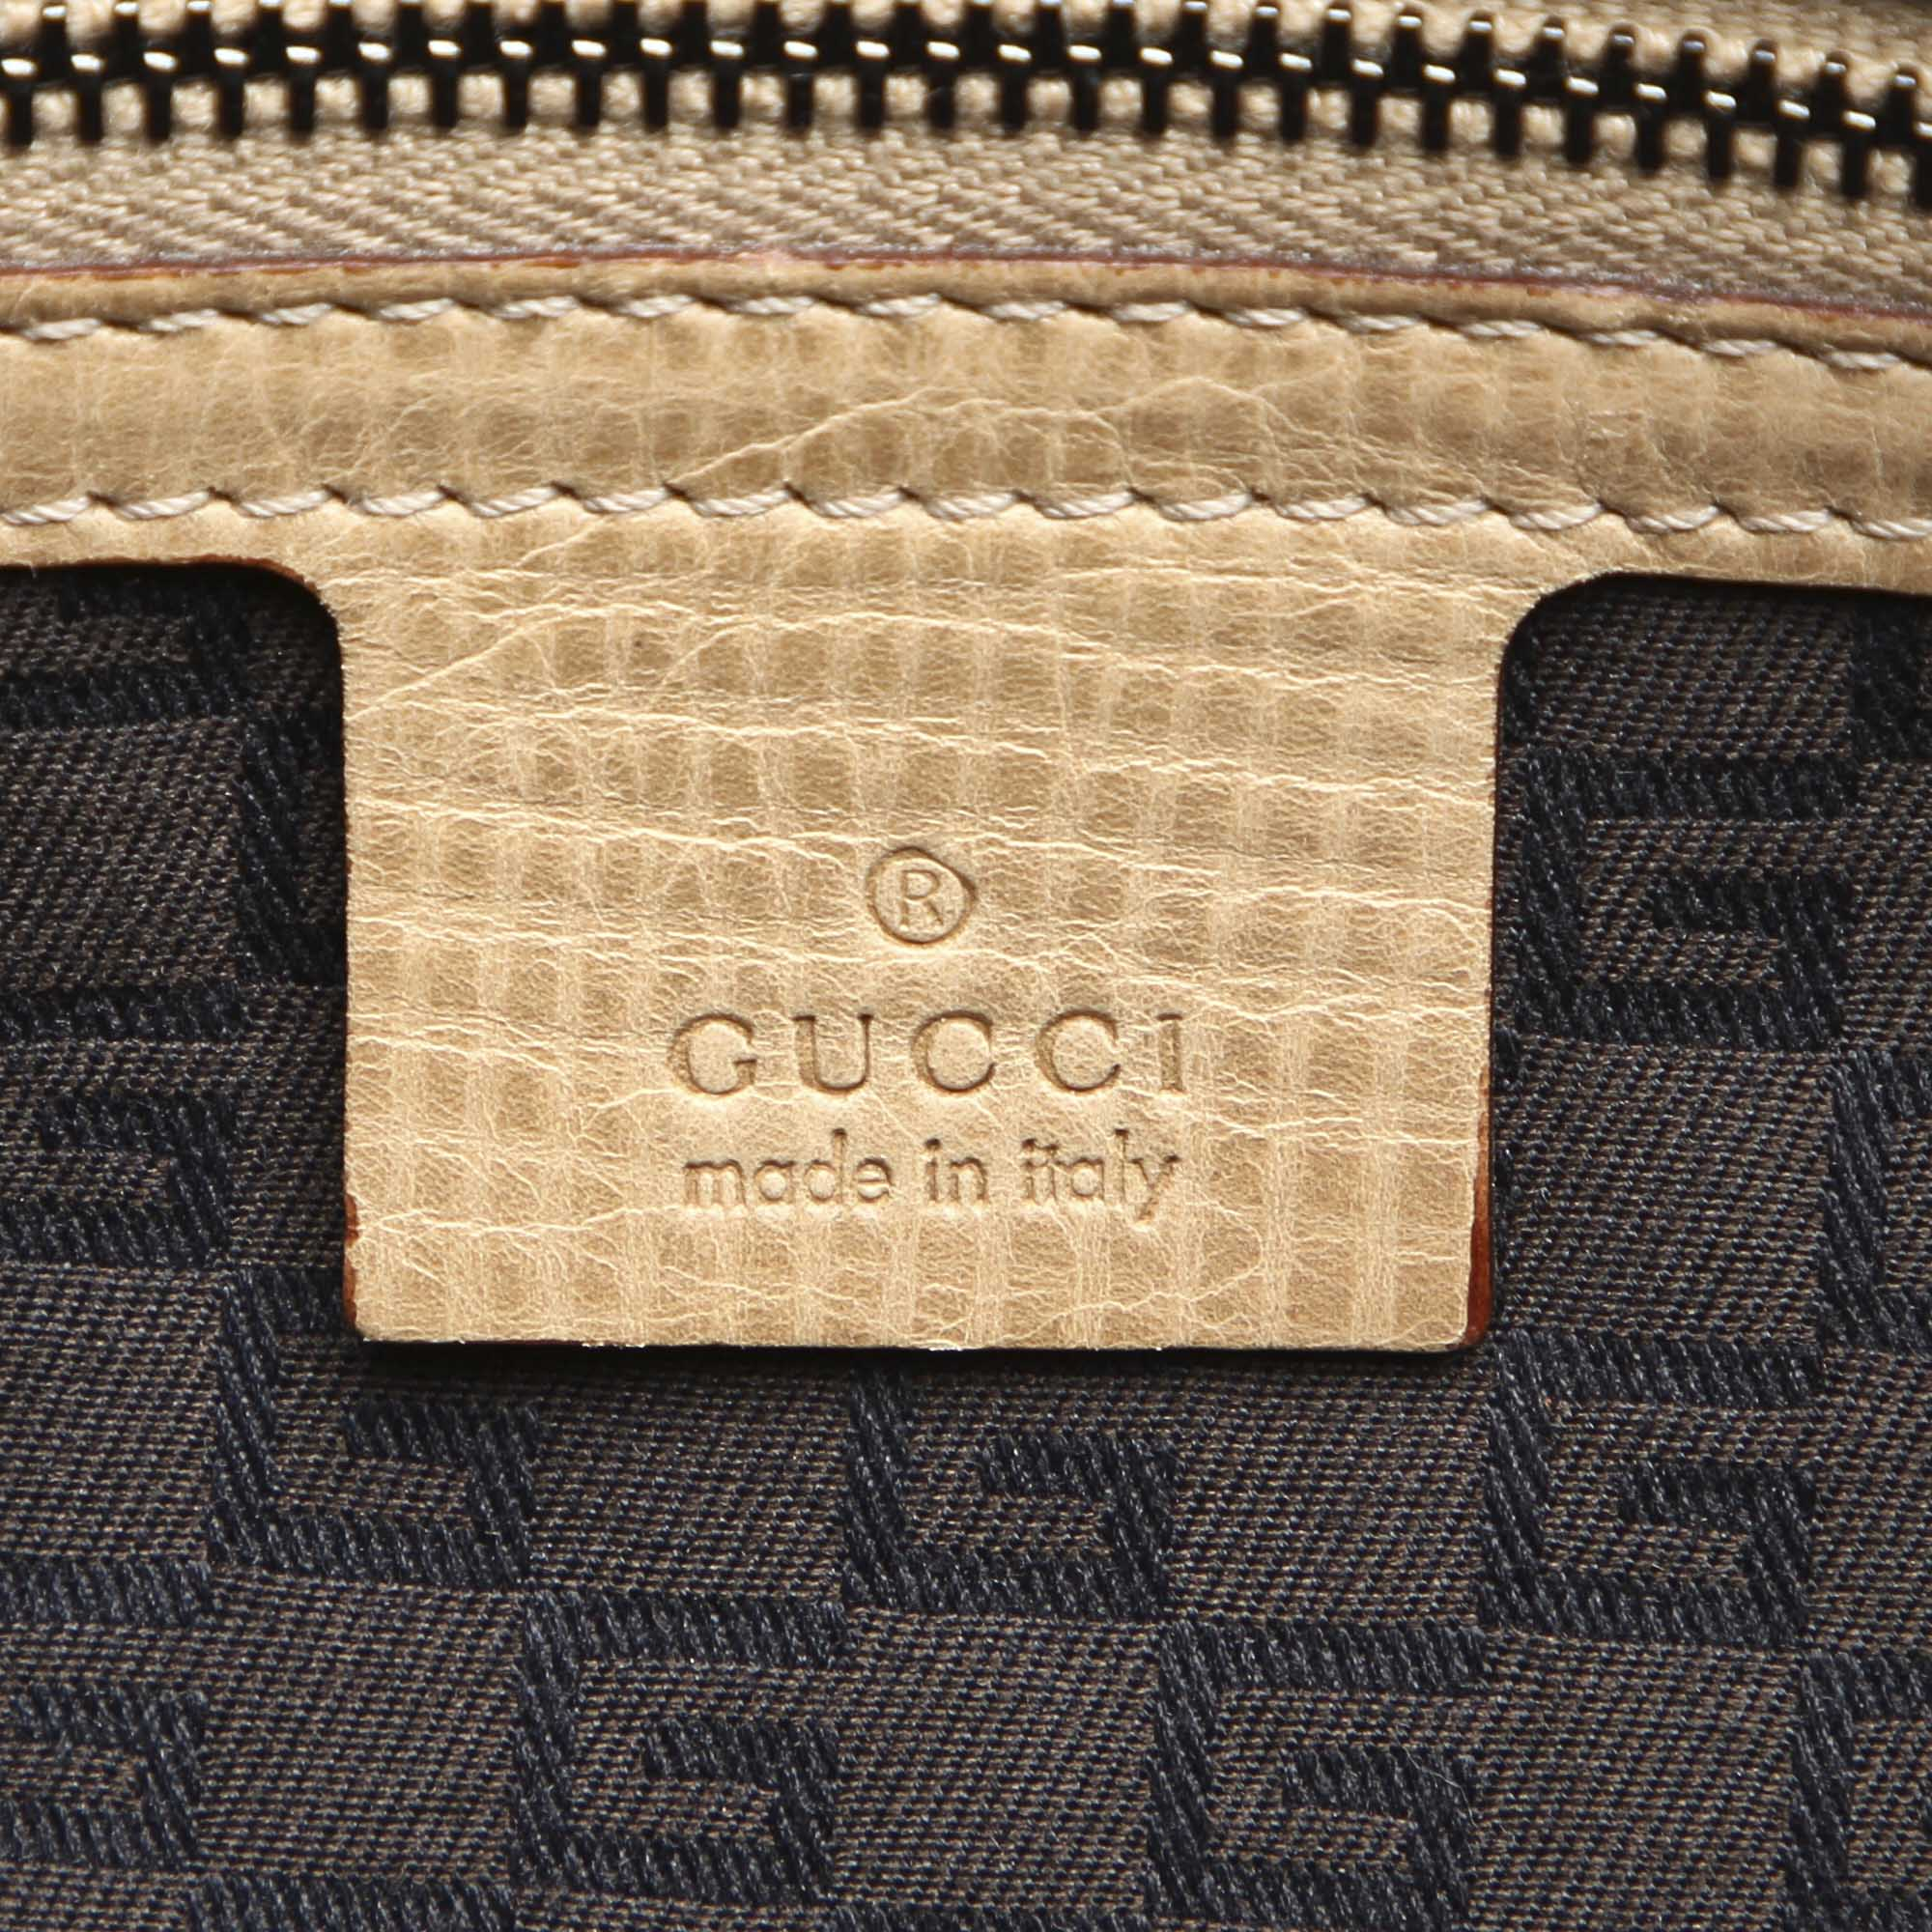 Gucci Brown Leather Handbag